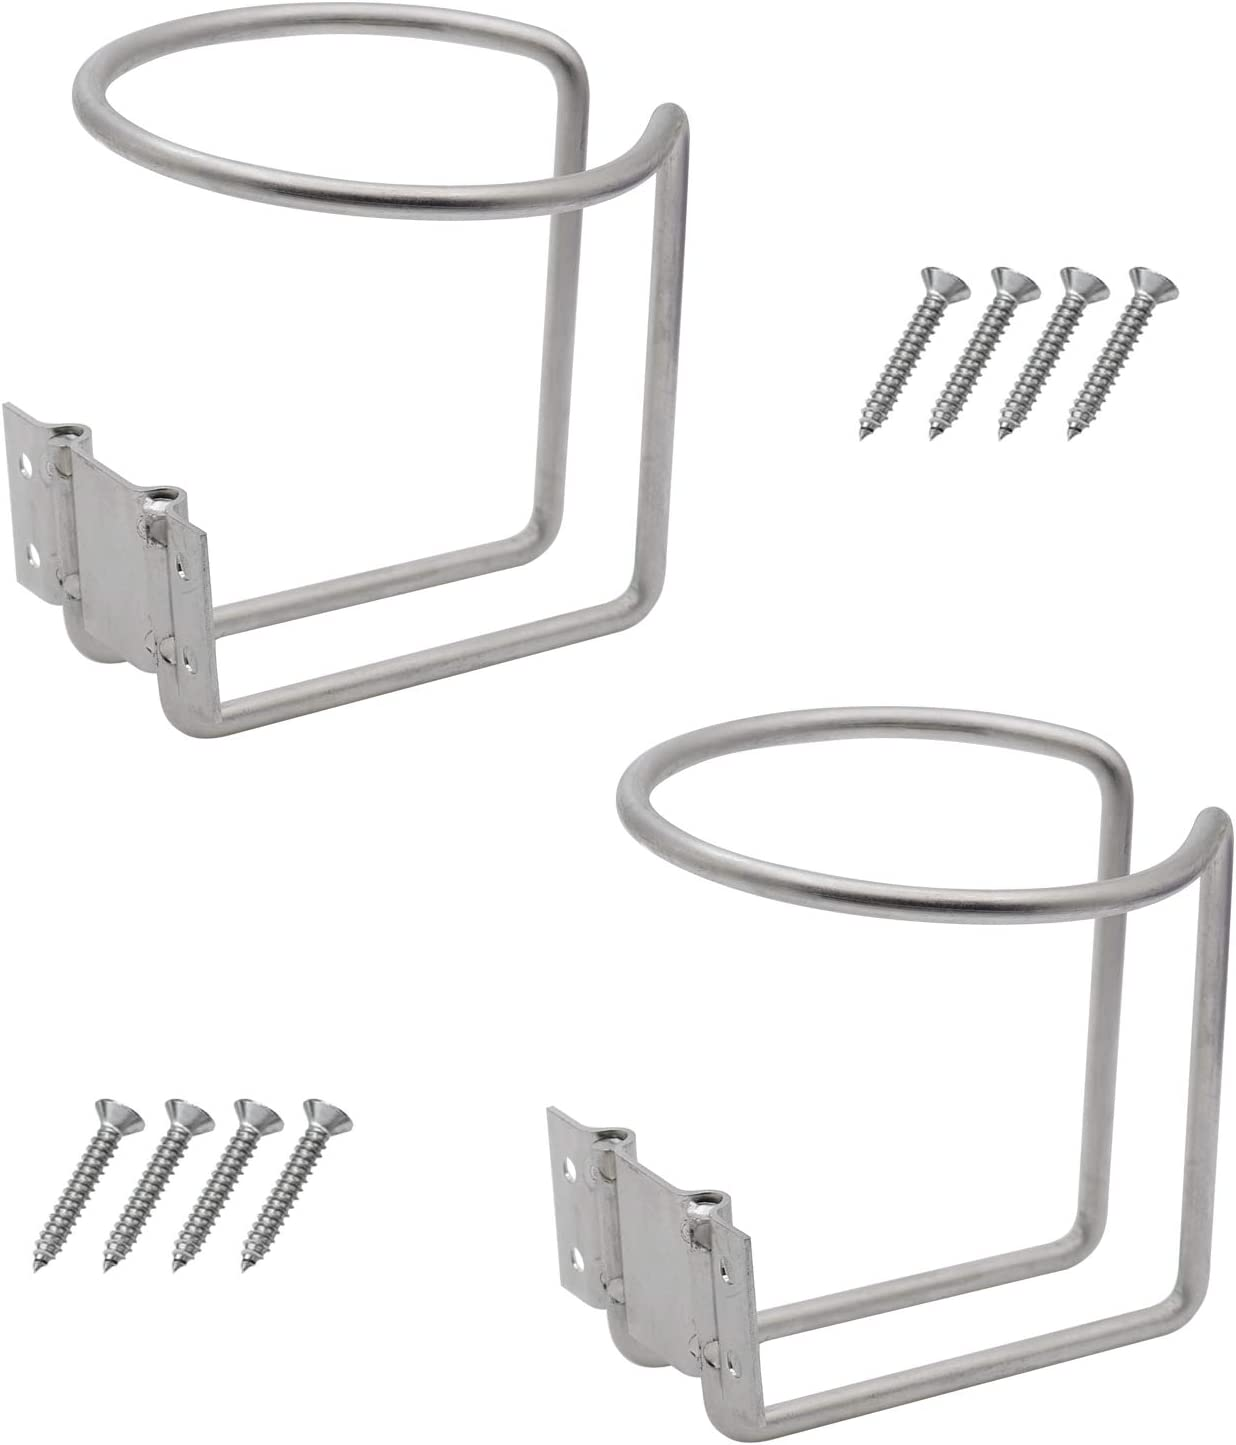 DGQ 2pcs Stainless Steel Boat Ring Cup Drink Holder for Marine Yacht Truck RV Camper